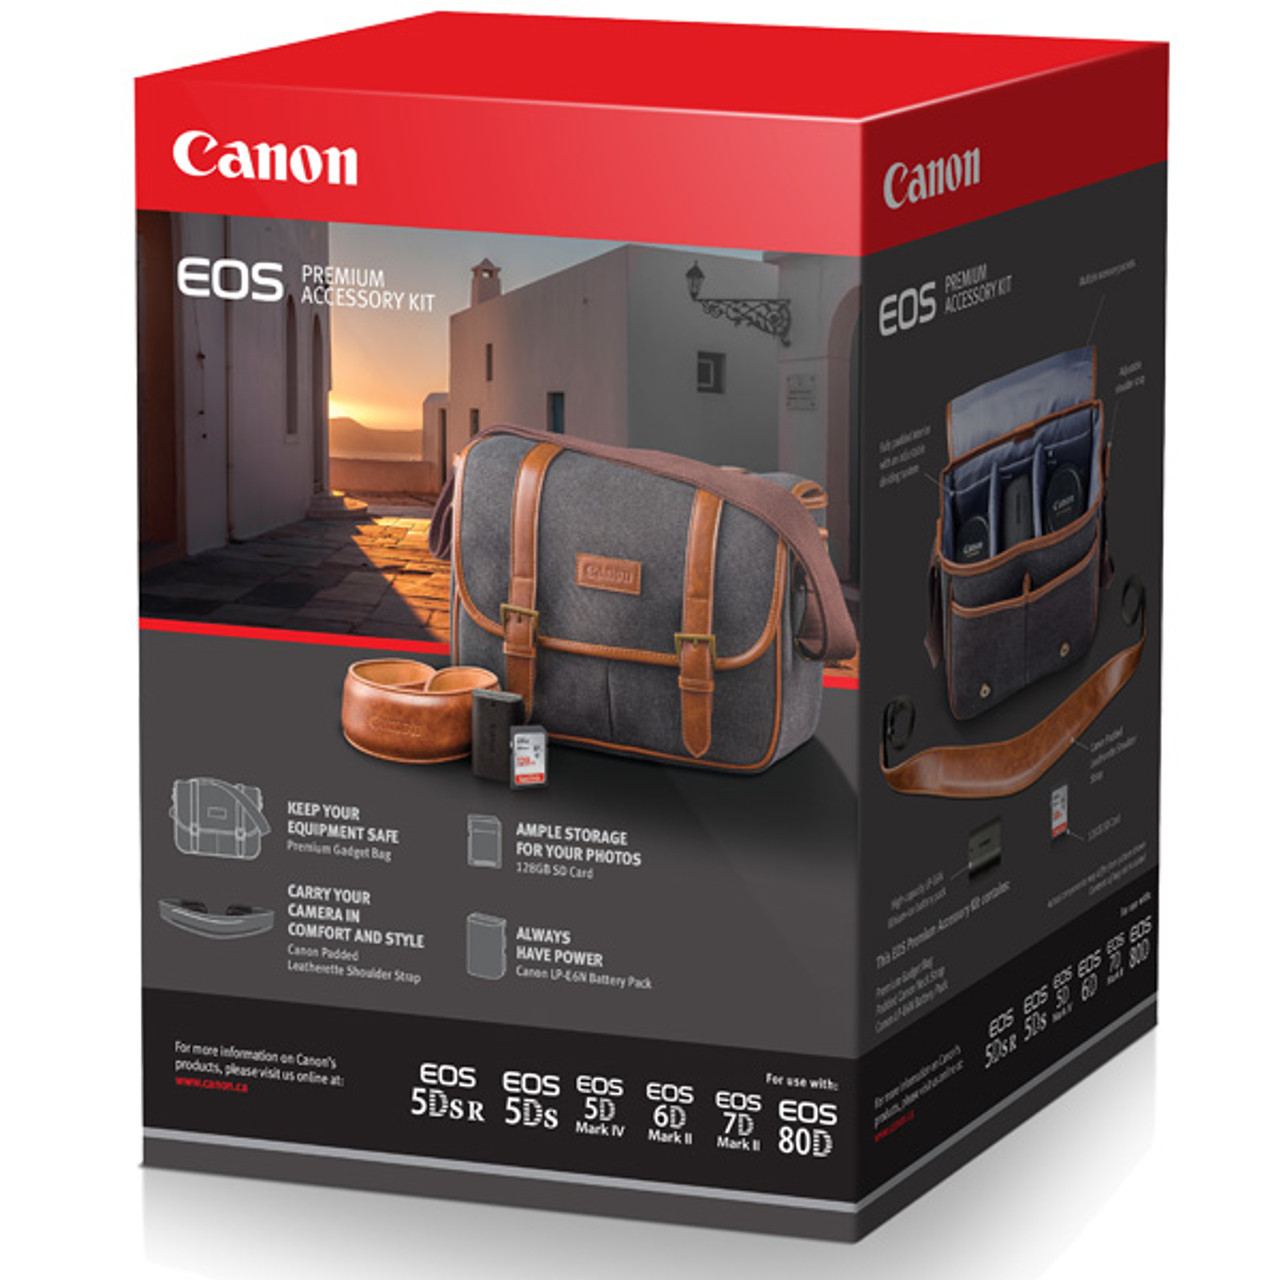 Canon Premium Accessory Kit (with 128GB CARD)